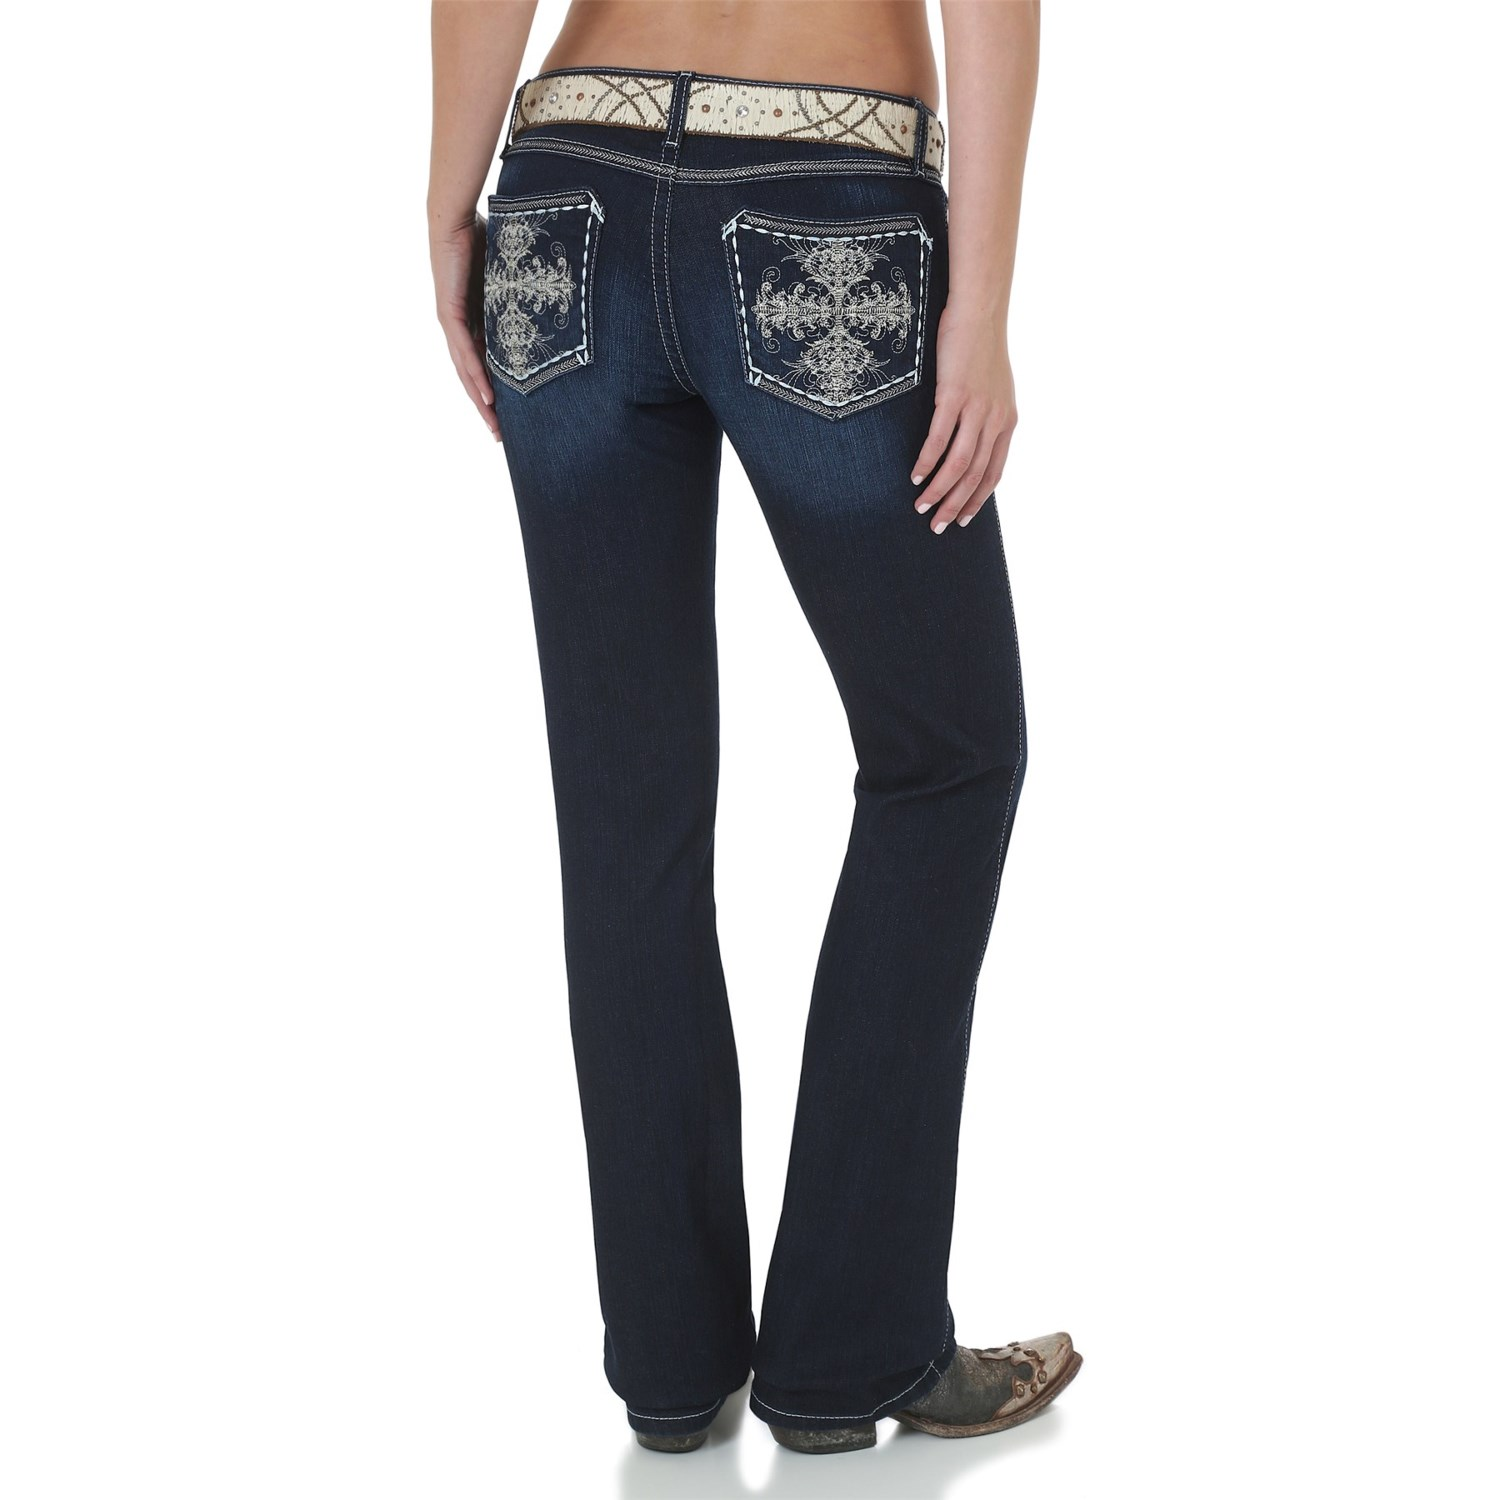 Pair Vigoss jeans with a blouseand jacket for work. Change the look up with a floral print, off the shoulder, blouse for a night out on the town. For another fun look, turn to skinny jeans by designers like Baby Phat and American Rag. This style of low rise jeans pairs perfectly with tanks for a casual look.